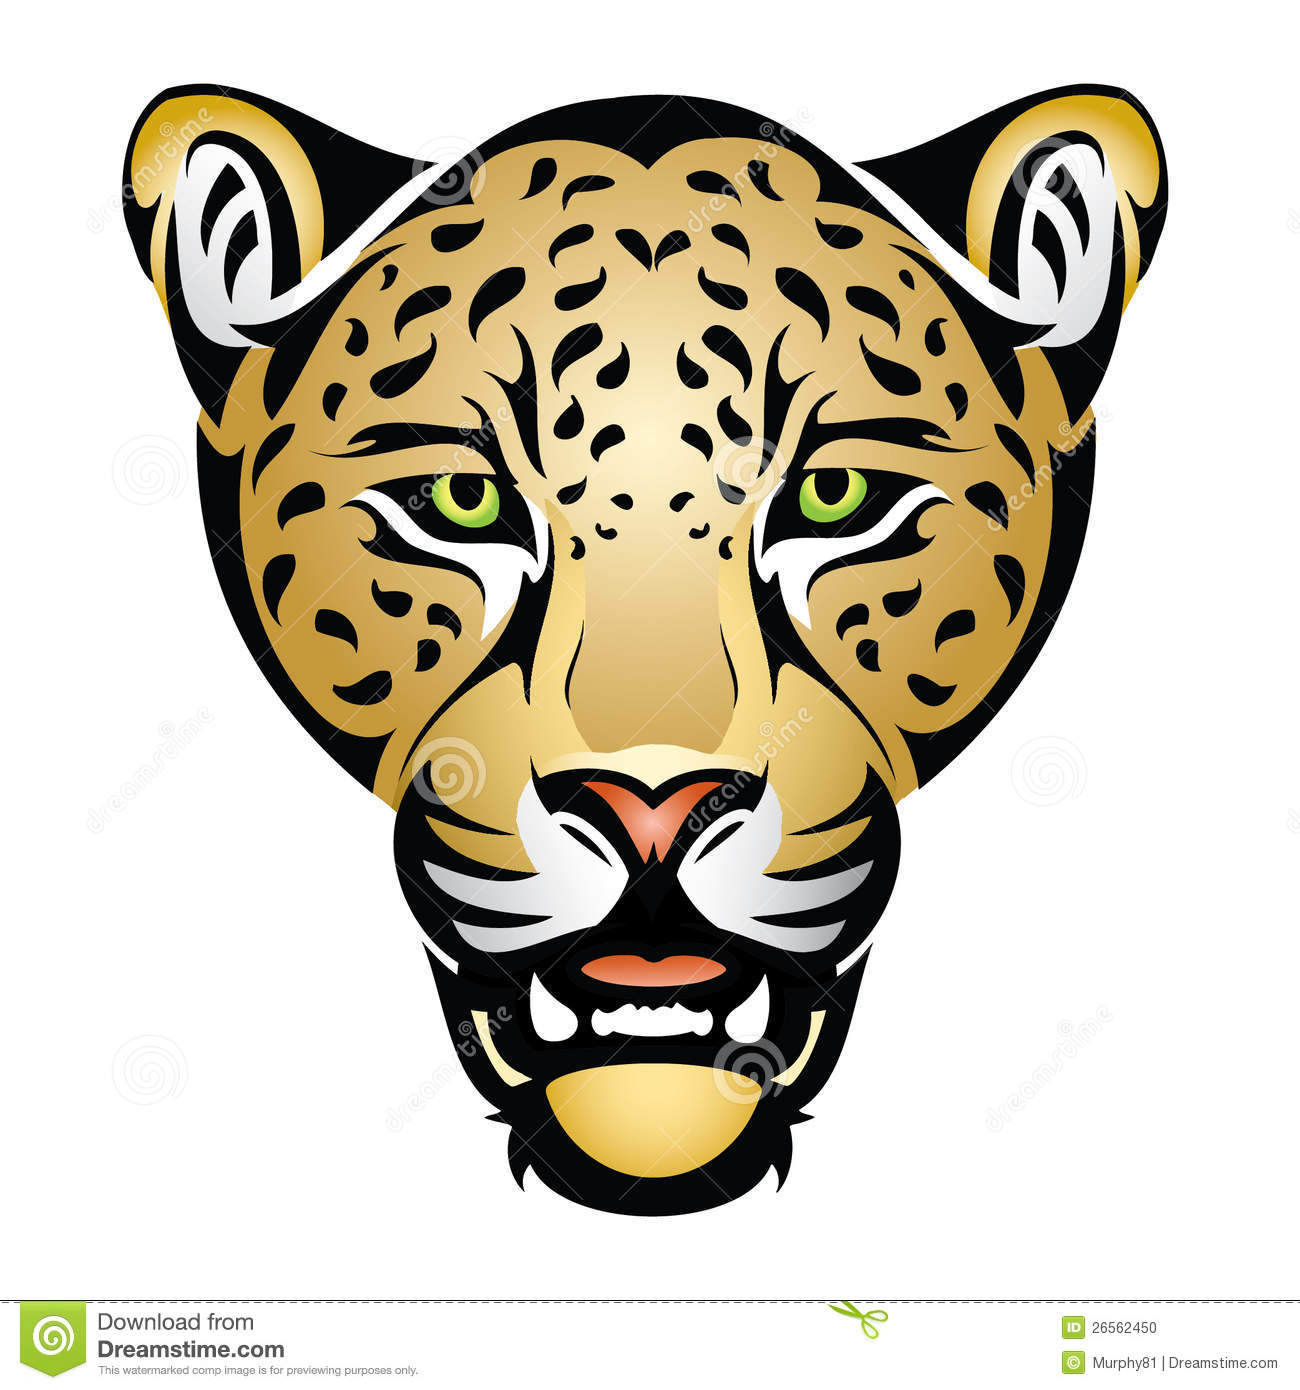 video jaguar paw download with Stock Photo Jaguar Head Image26562450 on Clipart Wildcat Paw Golden 1 likewise Royalty Free Stock Images Collection Black Silhouette Bear Heraldry Image30163749 further Stock Photo Jaguar Head Image26562450 besides Panther Paws besides Dog Paw Outline.